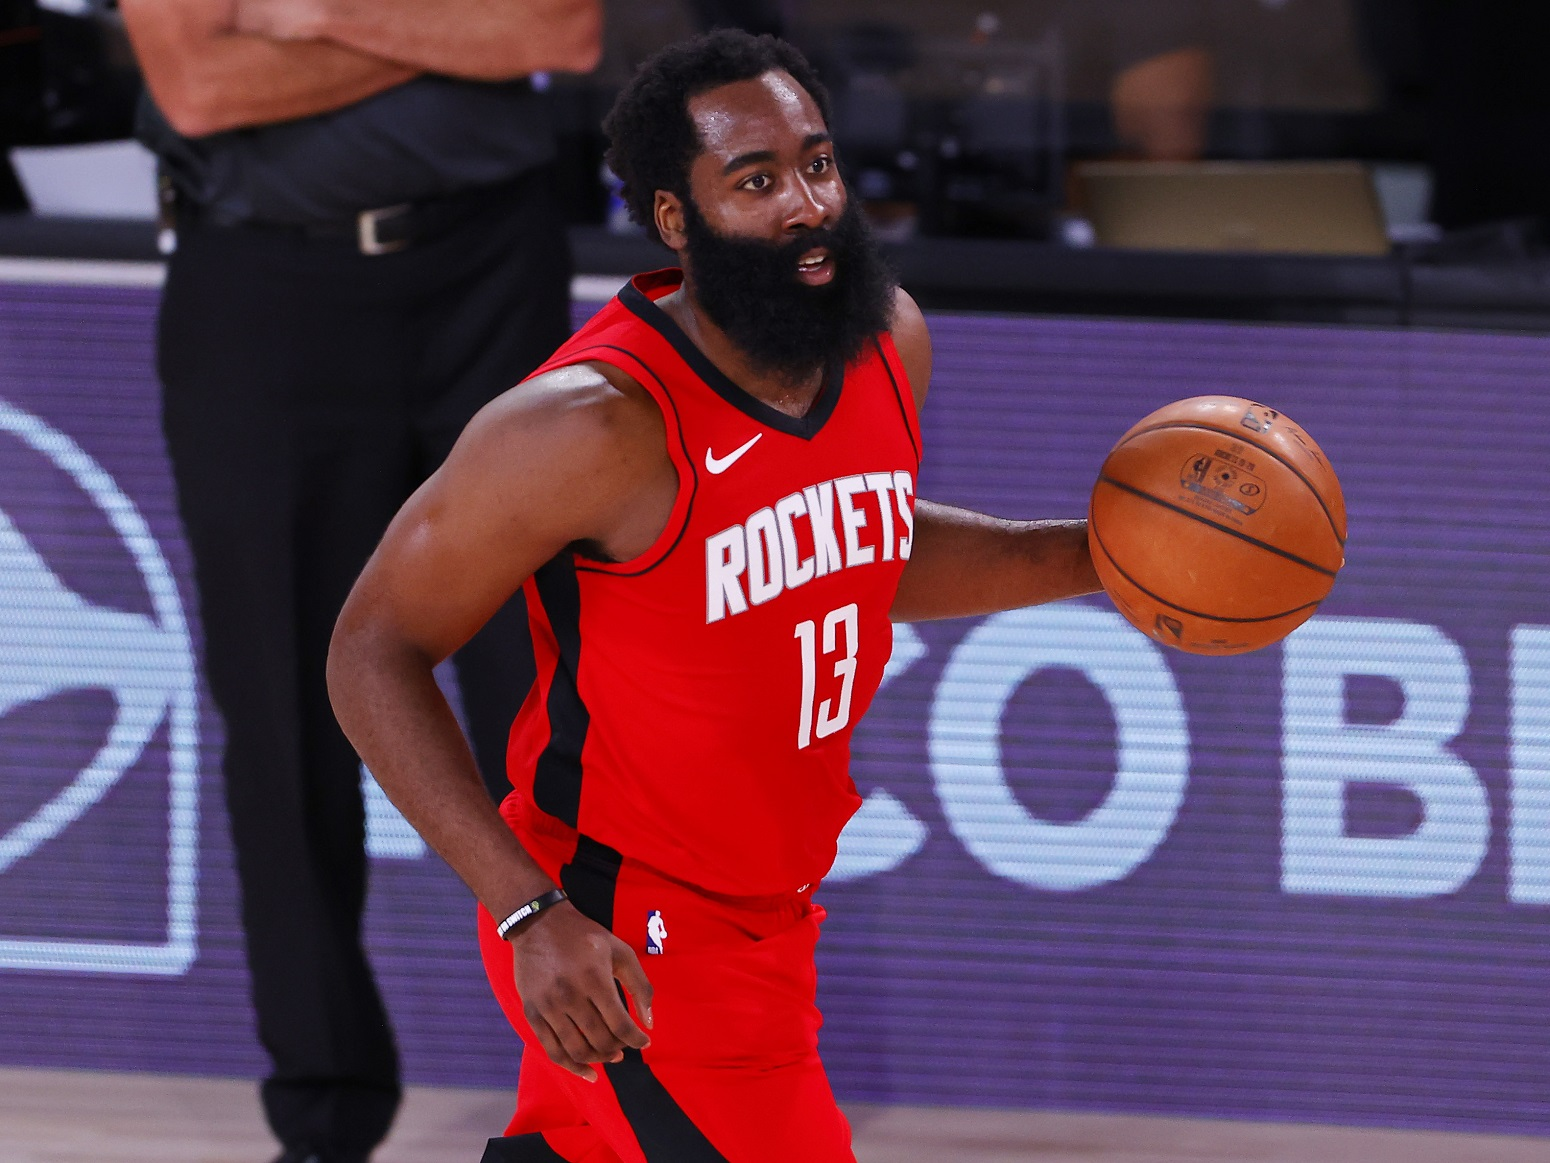 James Harden Rockets Michael Jordan NBA